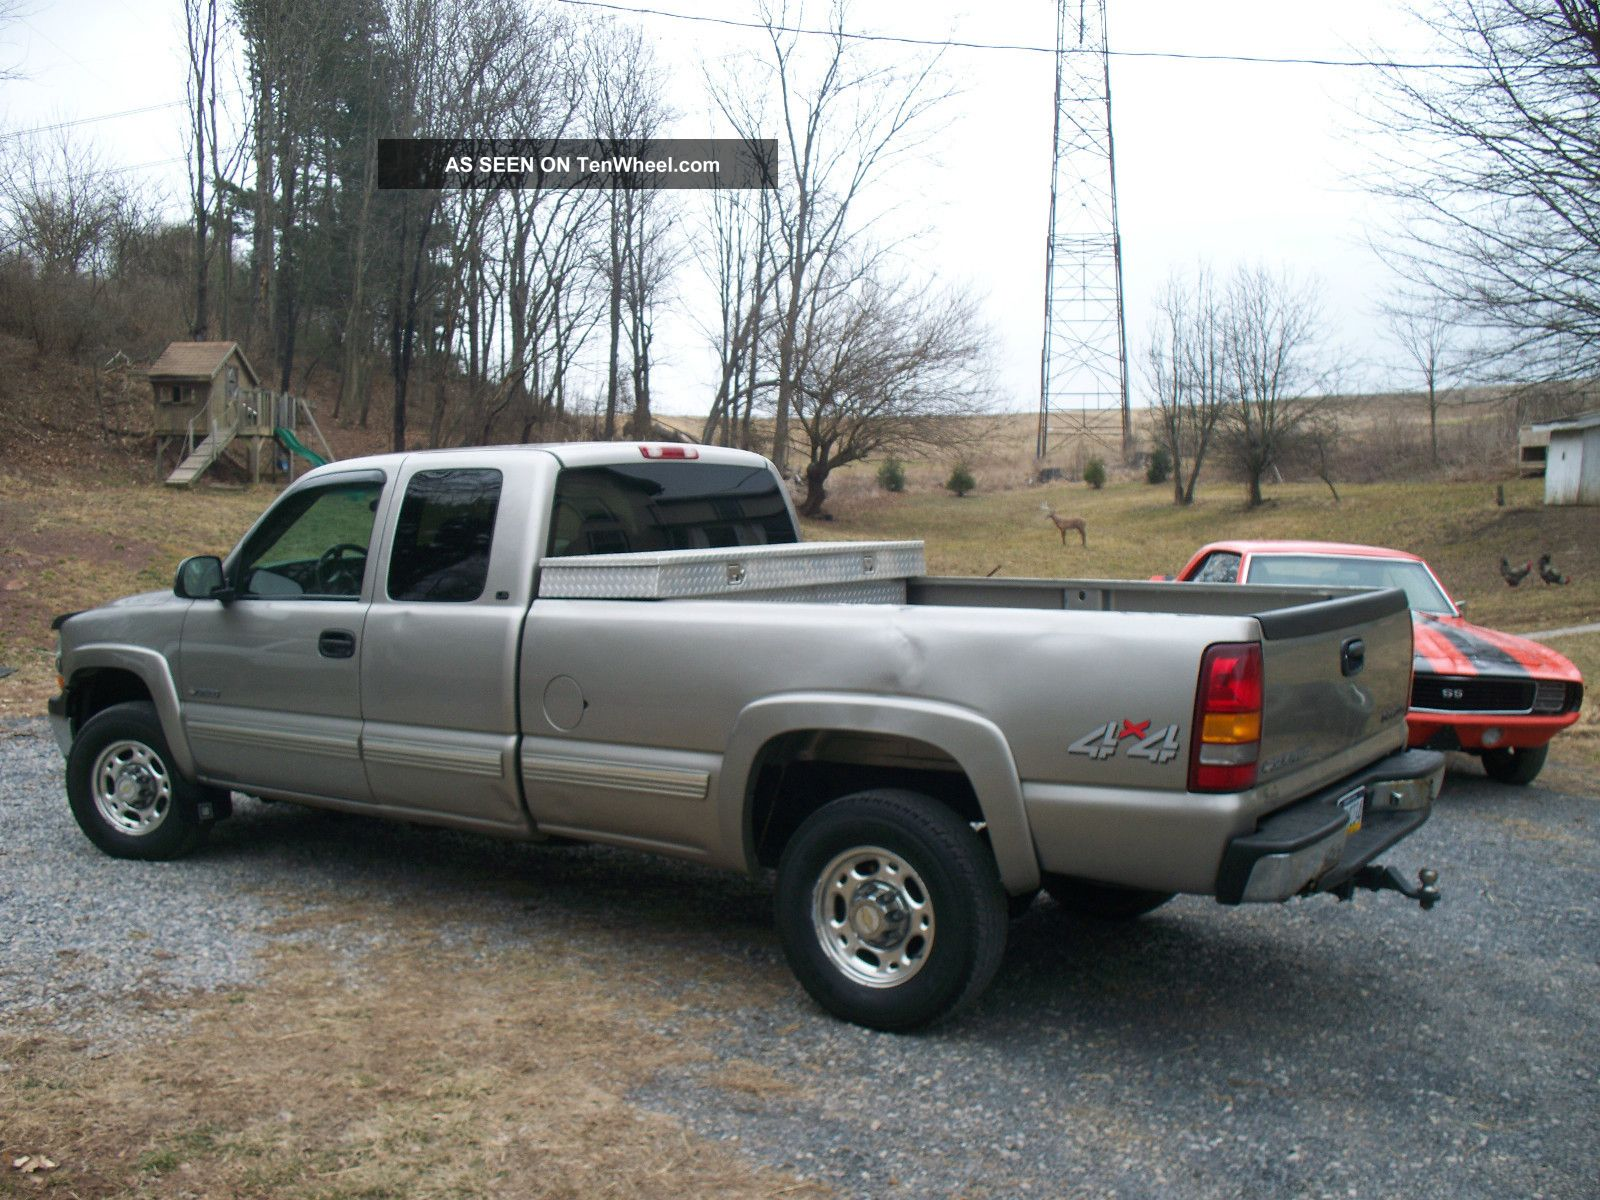 2000 chevy 2500hd 4x4, 6  0 v8, 5 speed manual, 3 door extended cab, 8 '  bed,